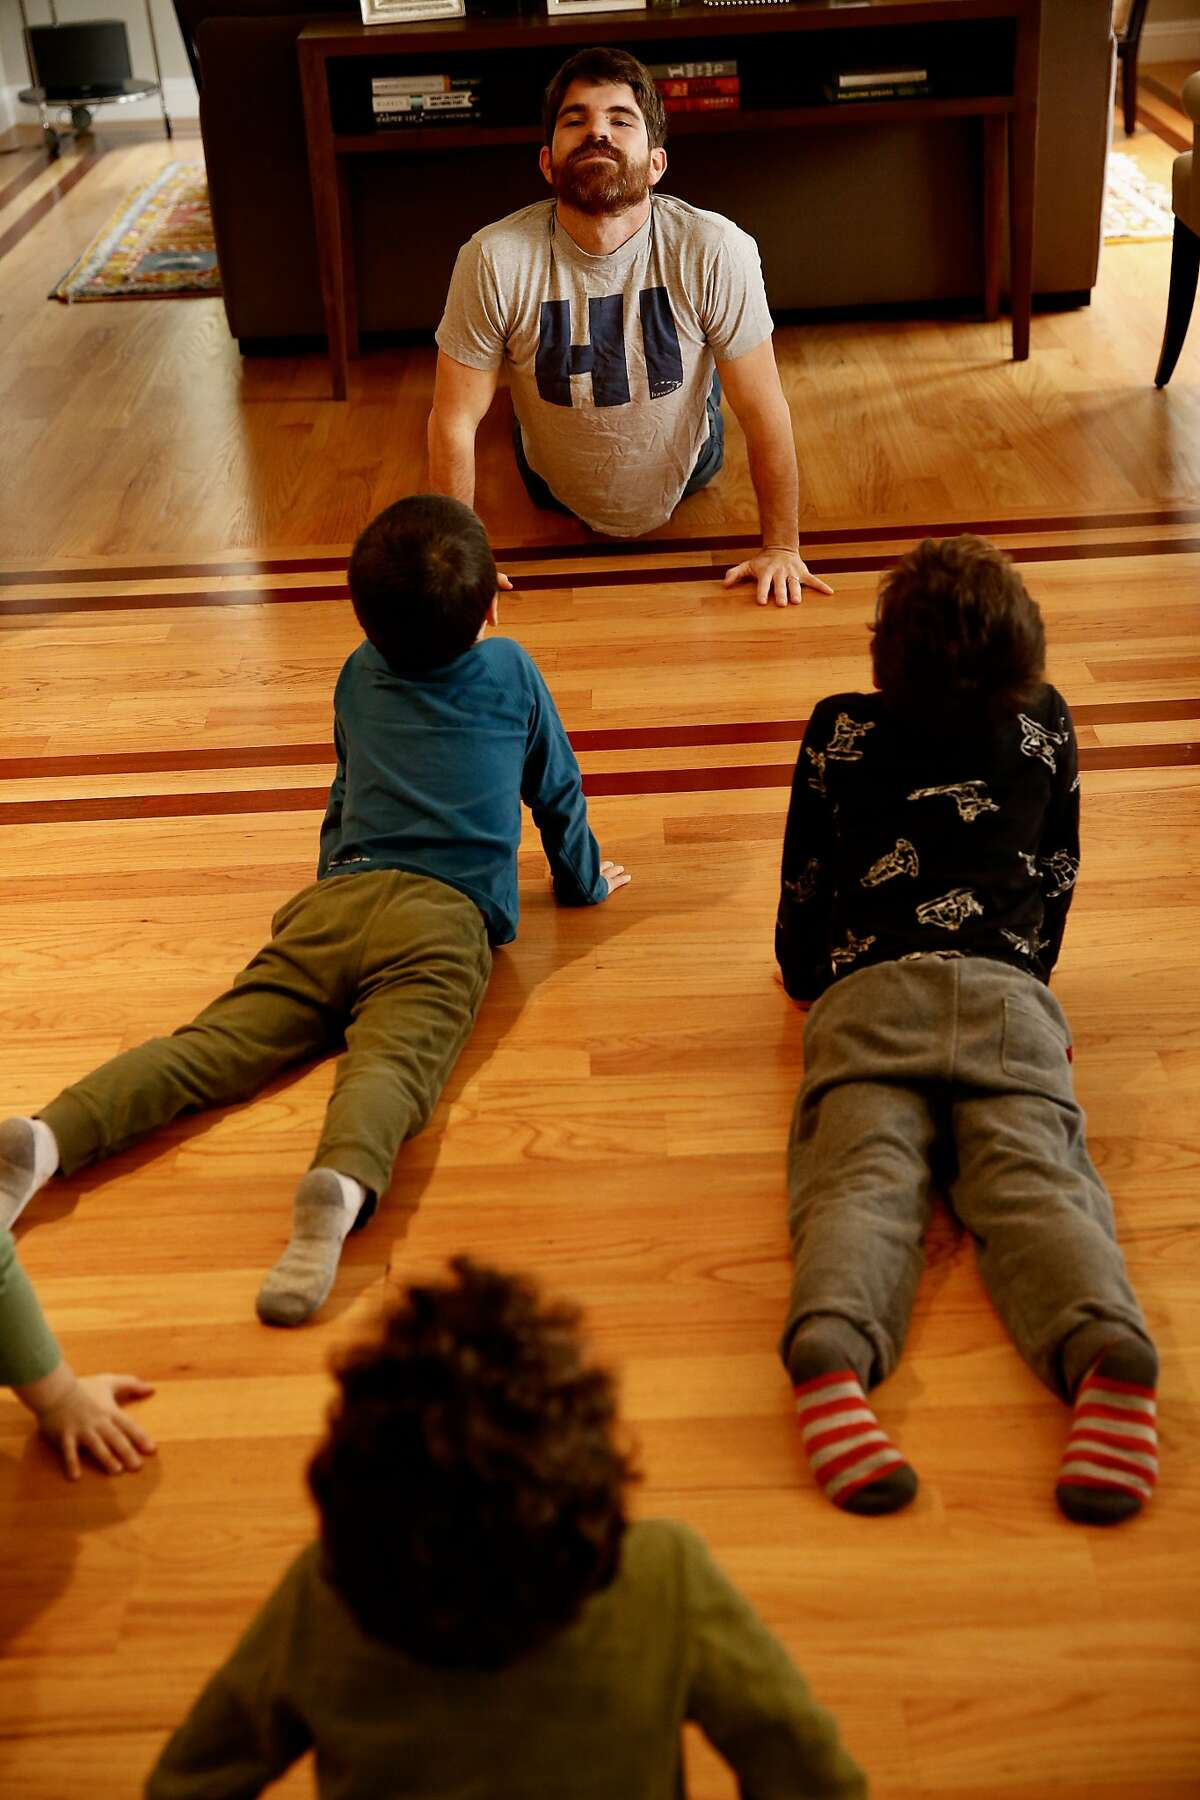 Darrow Deluca leads students from Kaiser Elementary School, Melrose Leadership Academy, and Claremont Middle School in a yoga pose in Alicia Johnson's home in Berkeley, Calif., on Wednesday, February 27, 2019. Johnson, 38, is a stay at home mother, who wants to make sure that those who want to support the teachers and not cross the picket line but have to work have options for childcare during the Oakland Teacher's Strike.